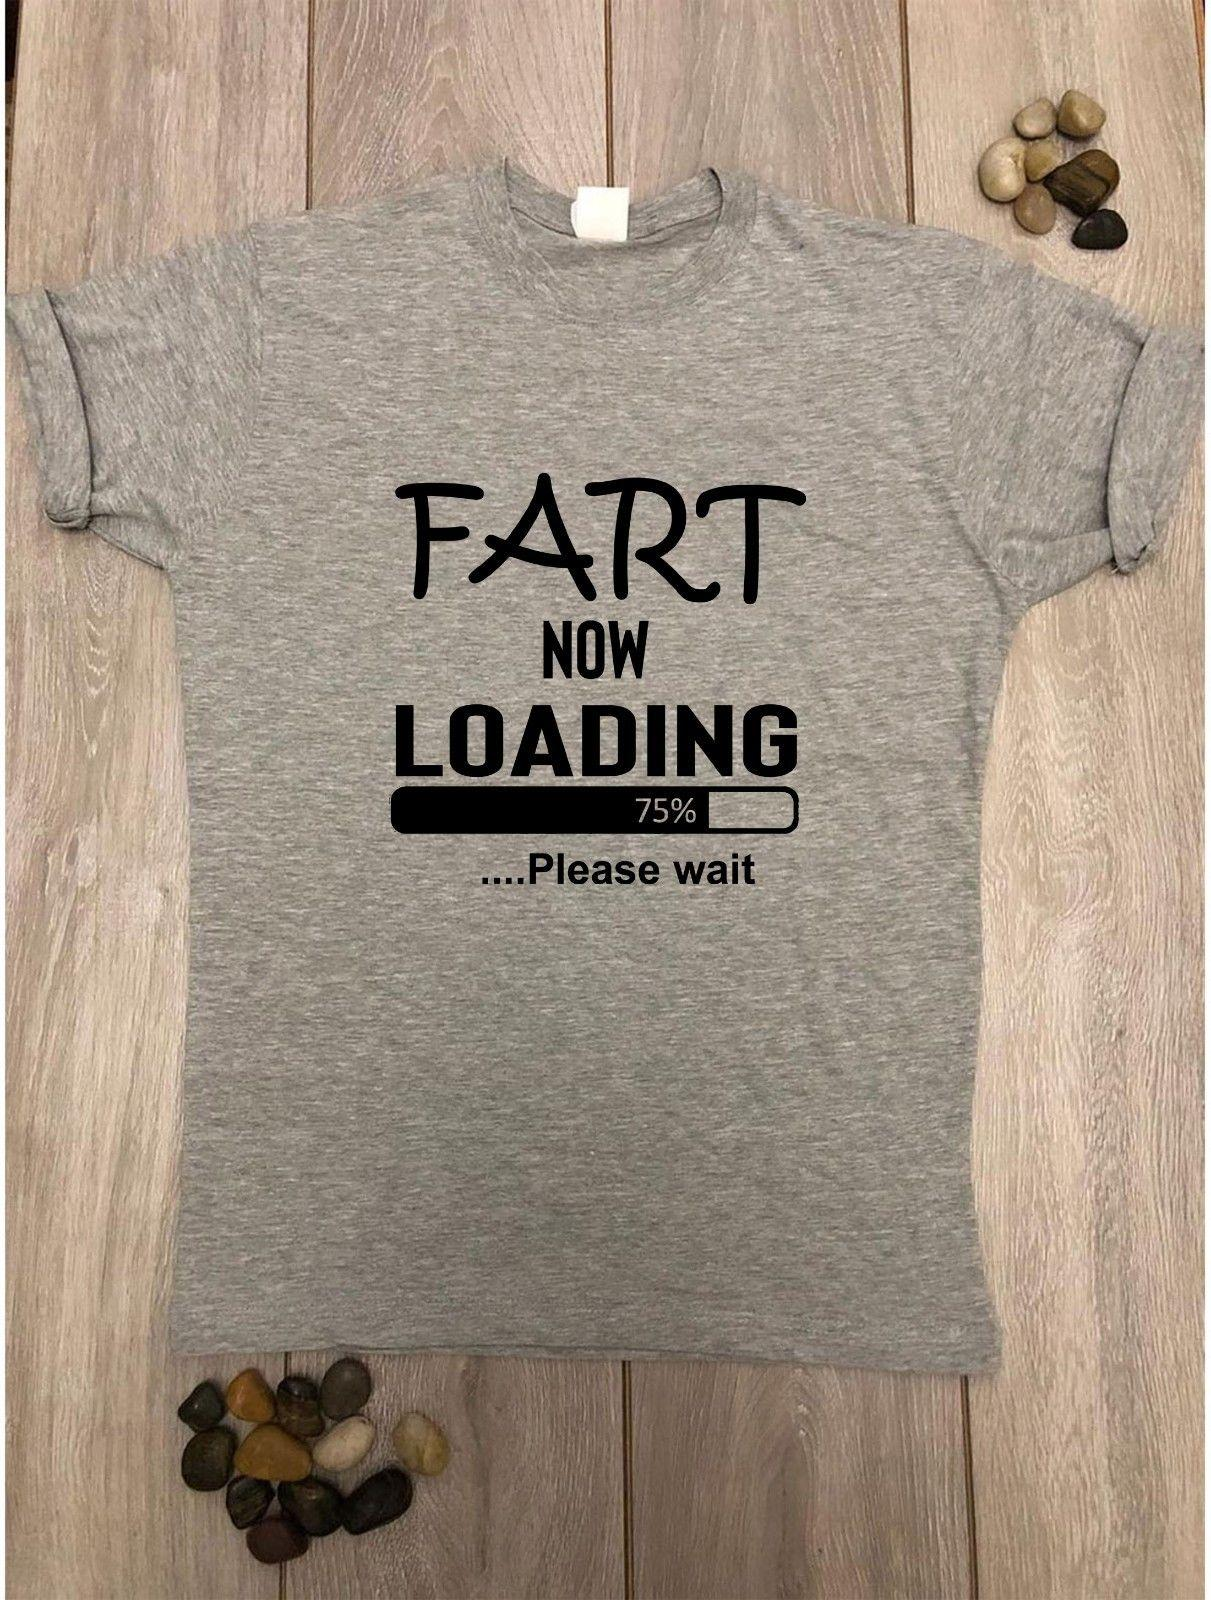 58b10c31c4abe FART NOW LOADING T Shirts Mens Funny Novelty Slogans Birthday Gifts Dad Tee  TopFunny Unisex Casual Tshirt Top Buy Shirts Online Print Shirts From ...